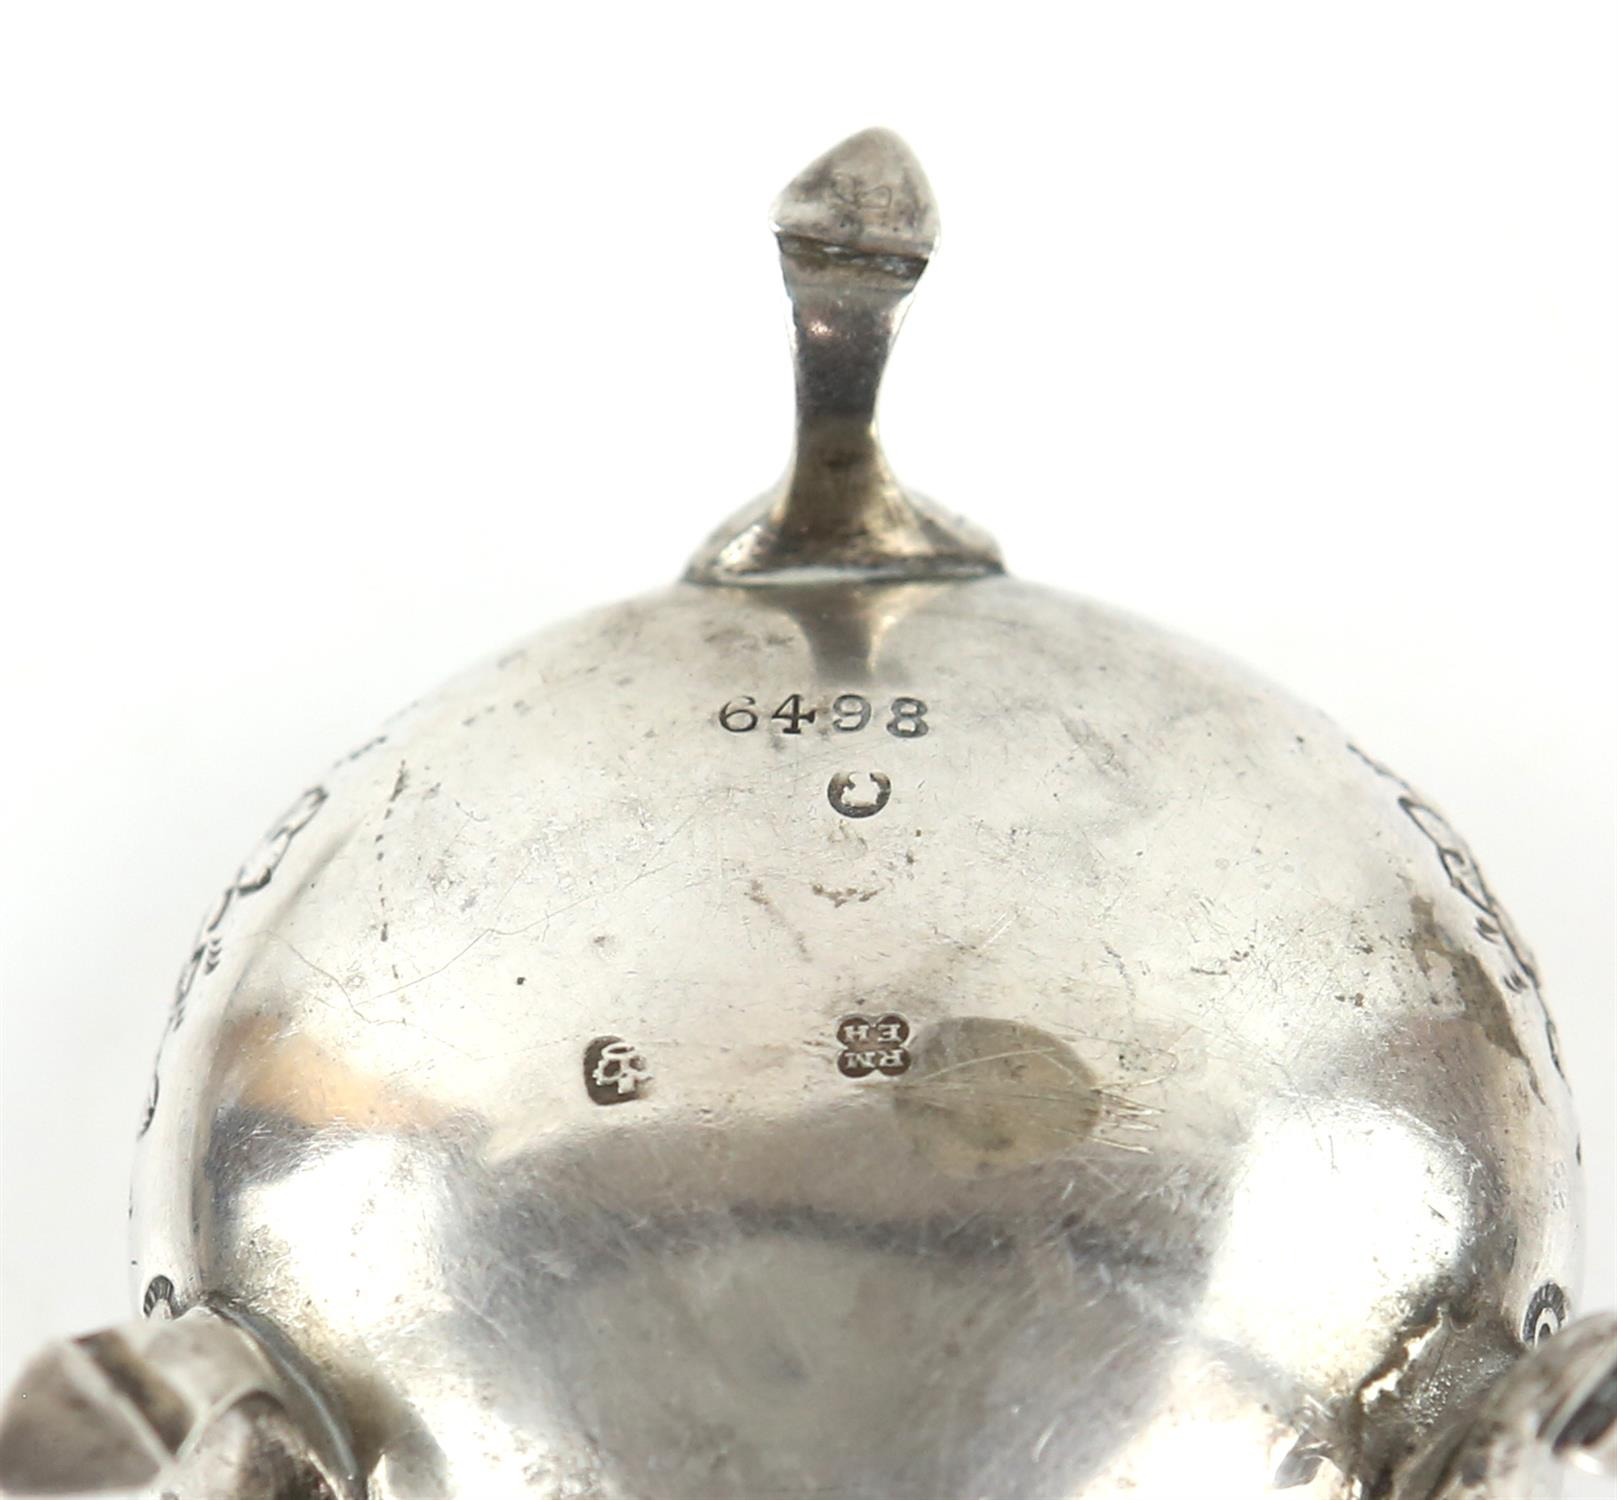 American sterling silver pepperette with floral embossed ddecoration, marked Sterling, - Image 7 of 18